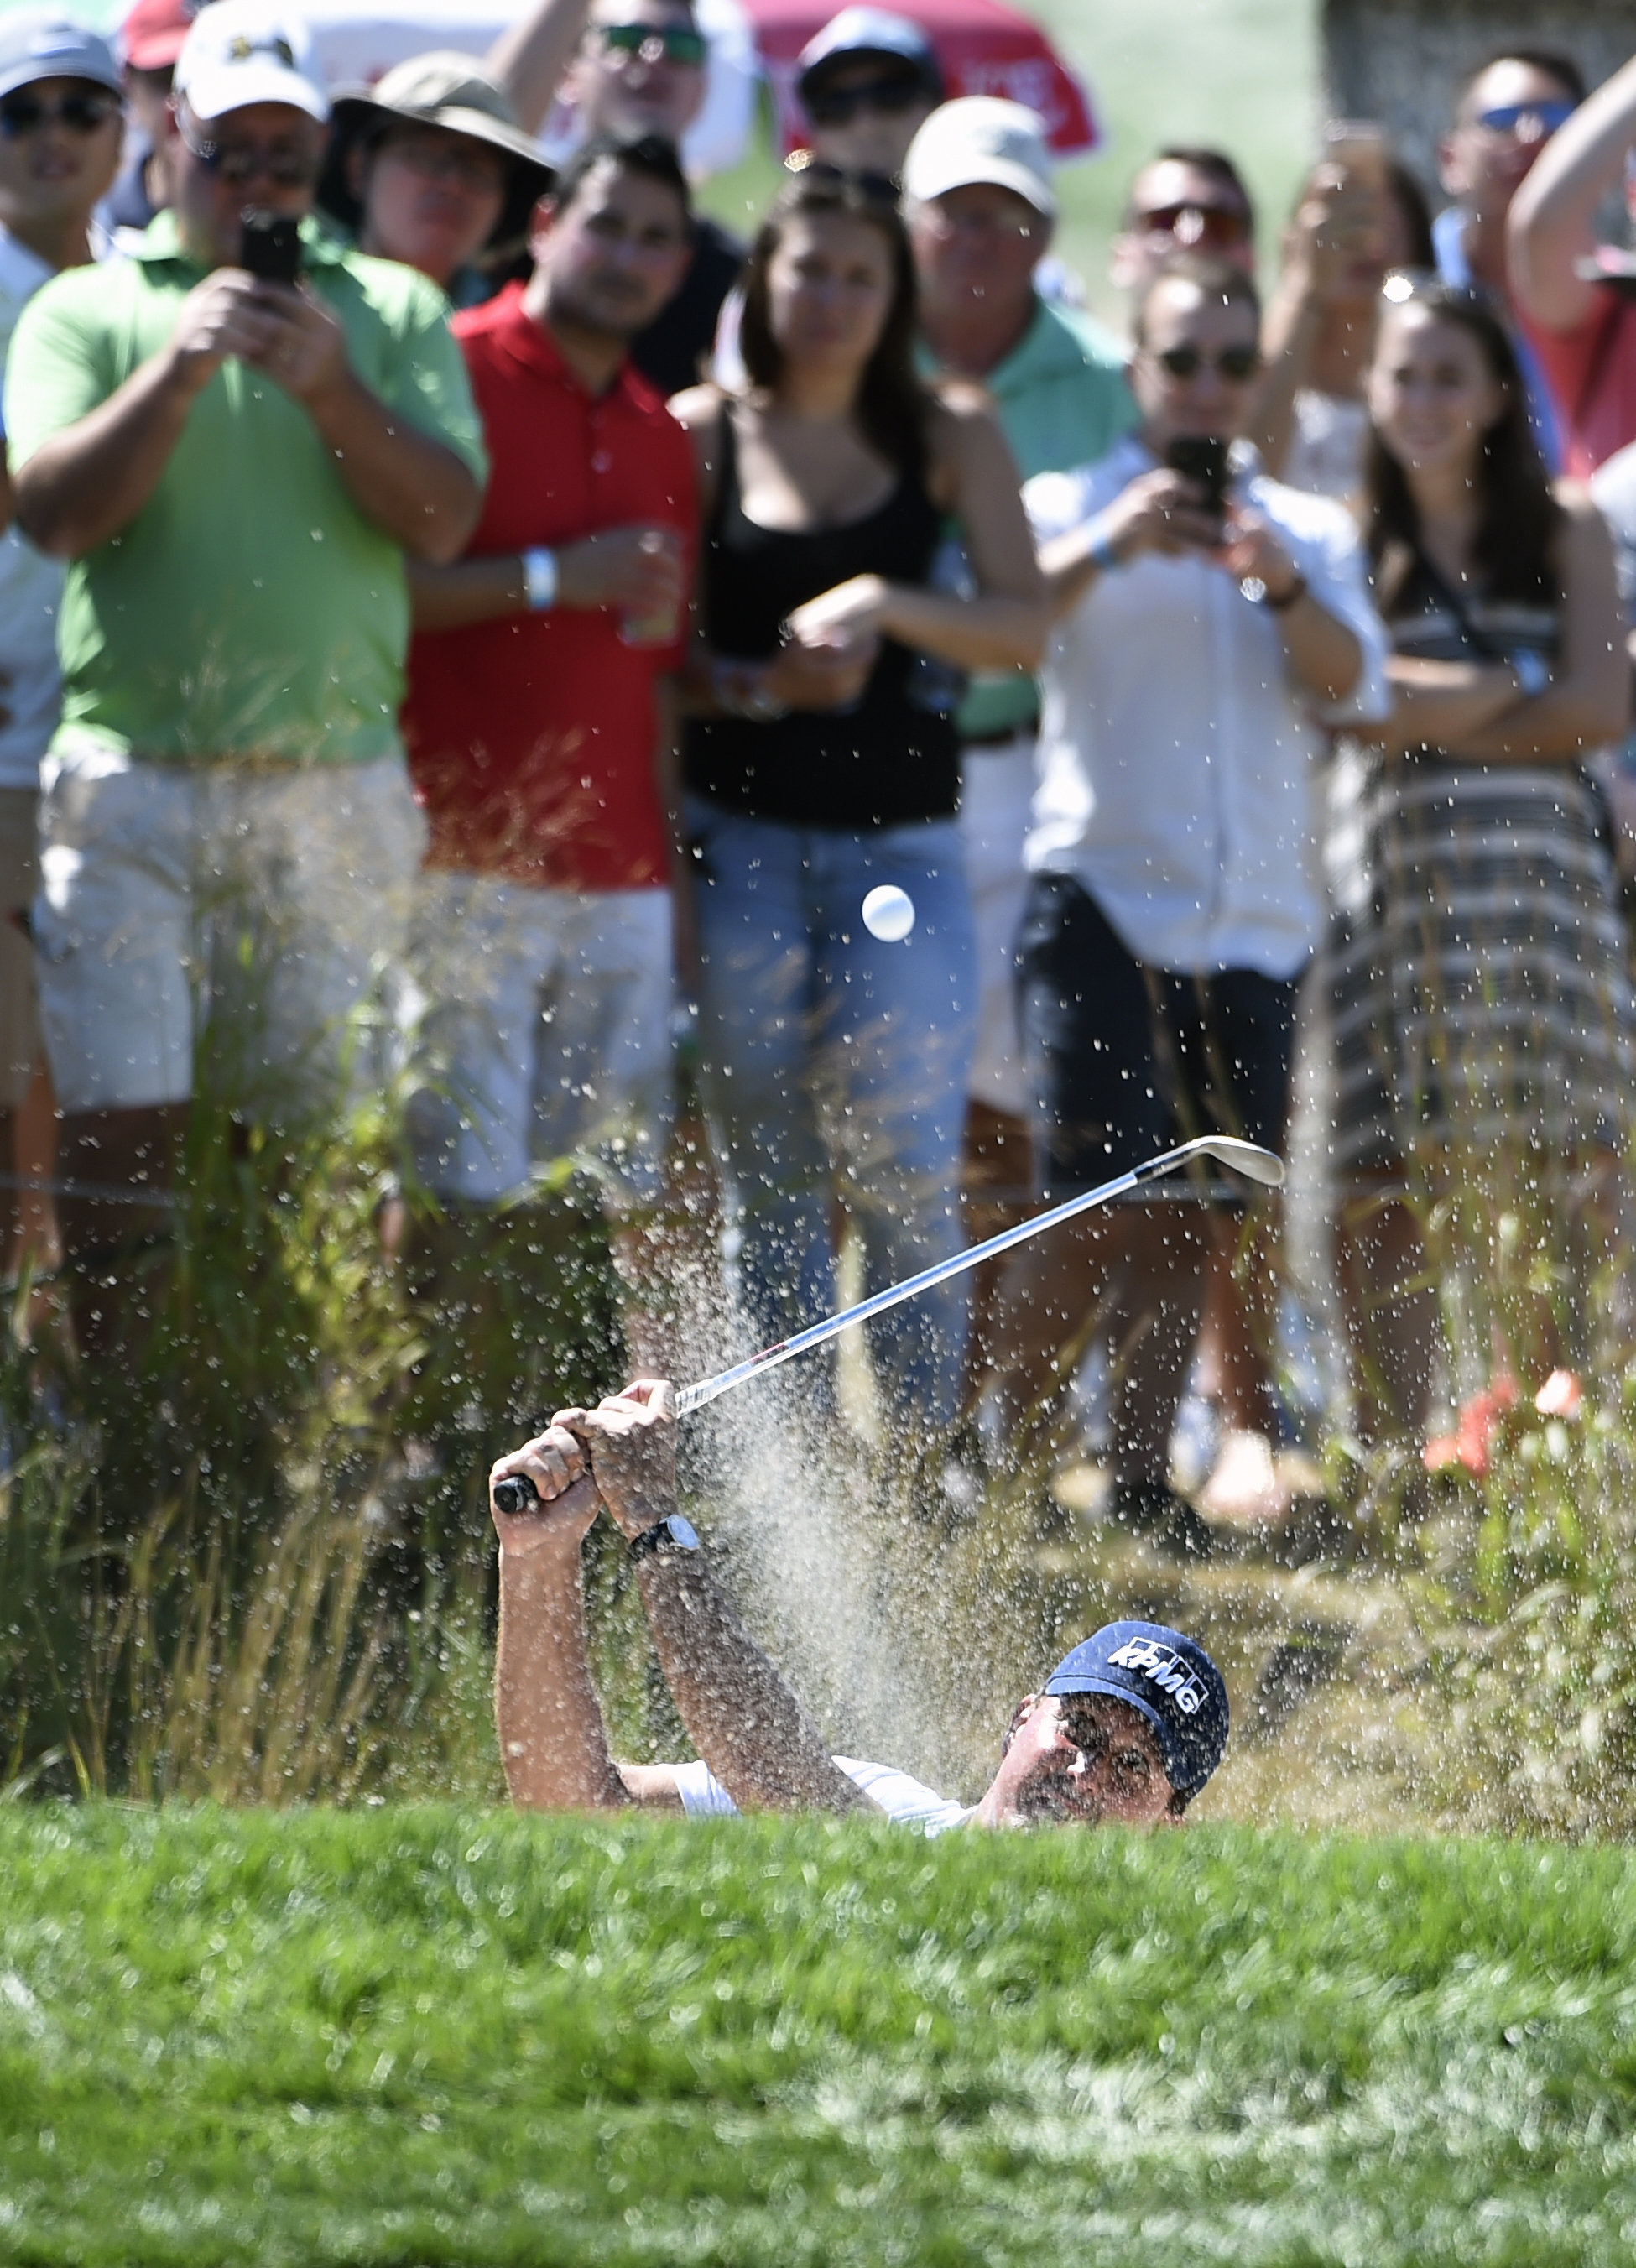 Fans watch Phil Mickelson chip out of sand trap on the 16th hole during the final round of The Barclays golf tournament in Farmingdale, N.Y., Sunday, Aug. 28, 2016. (AP Photo/Kathy Kmonicek)